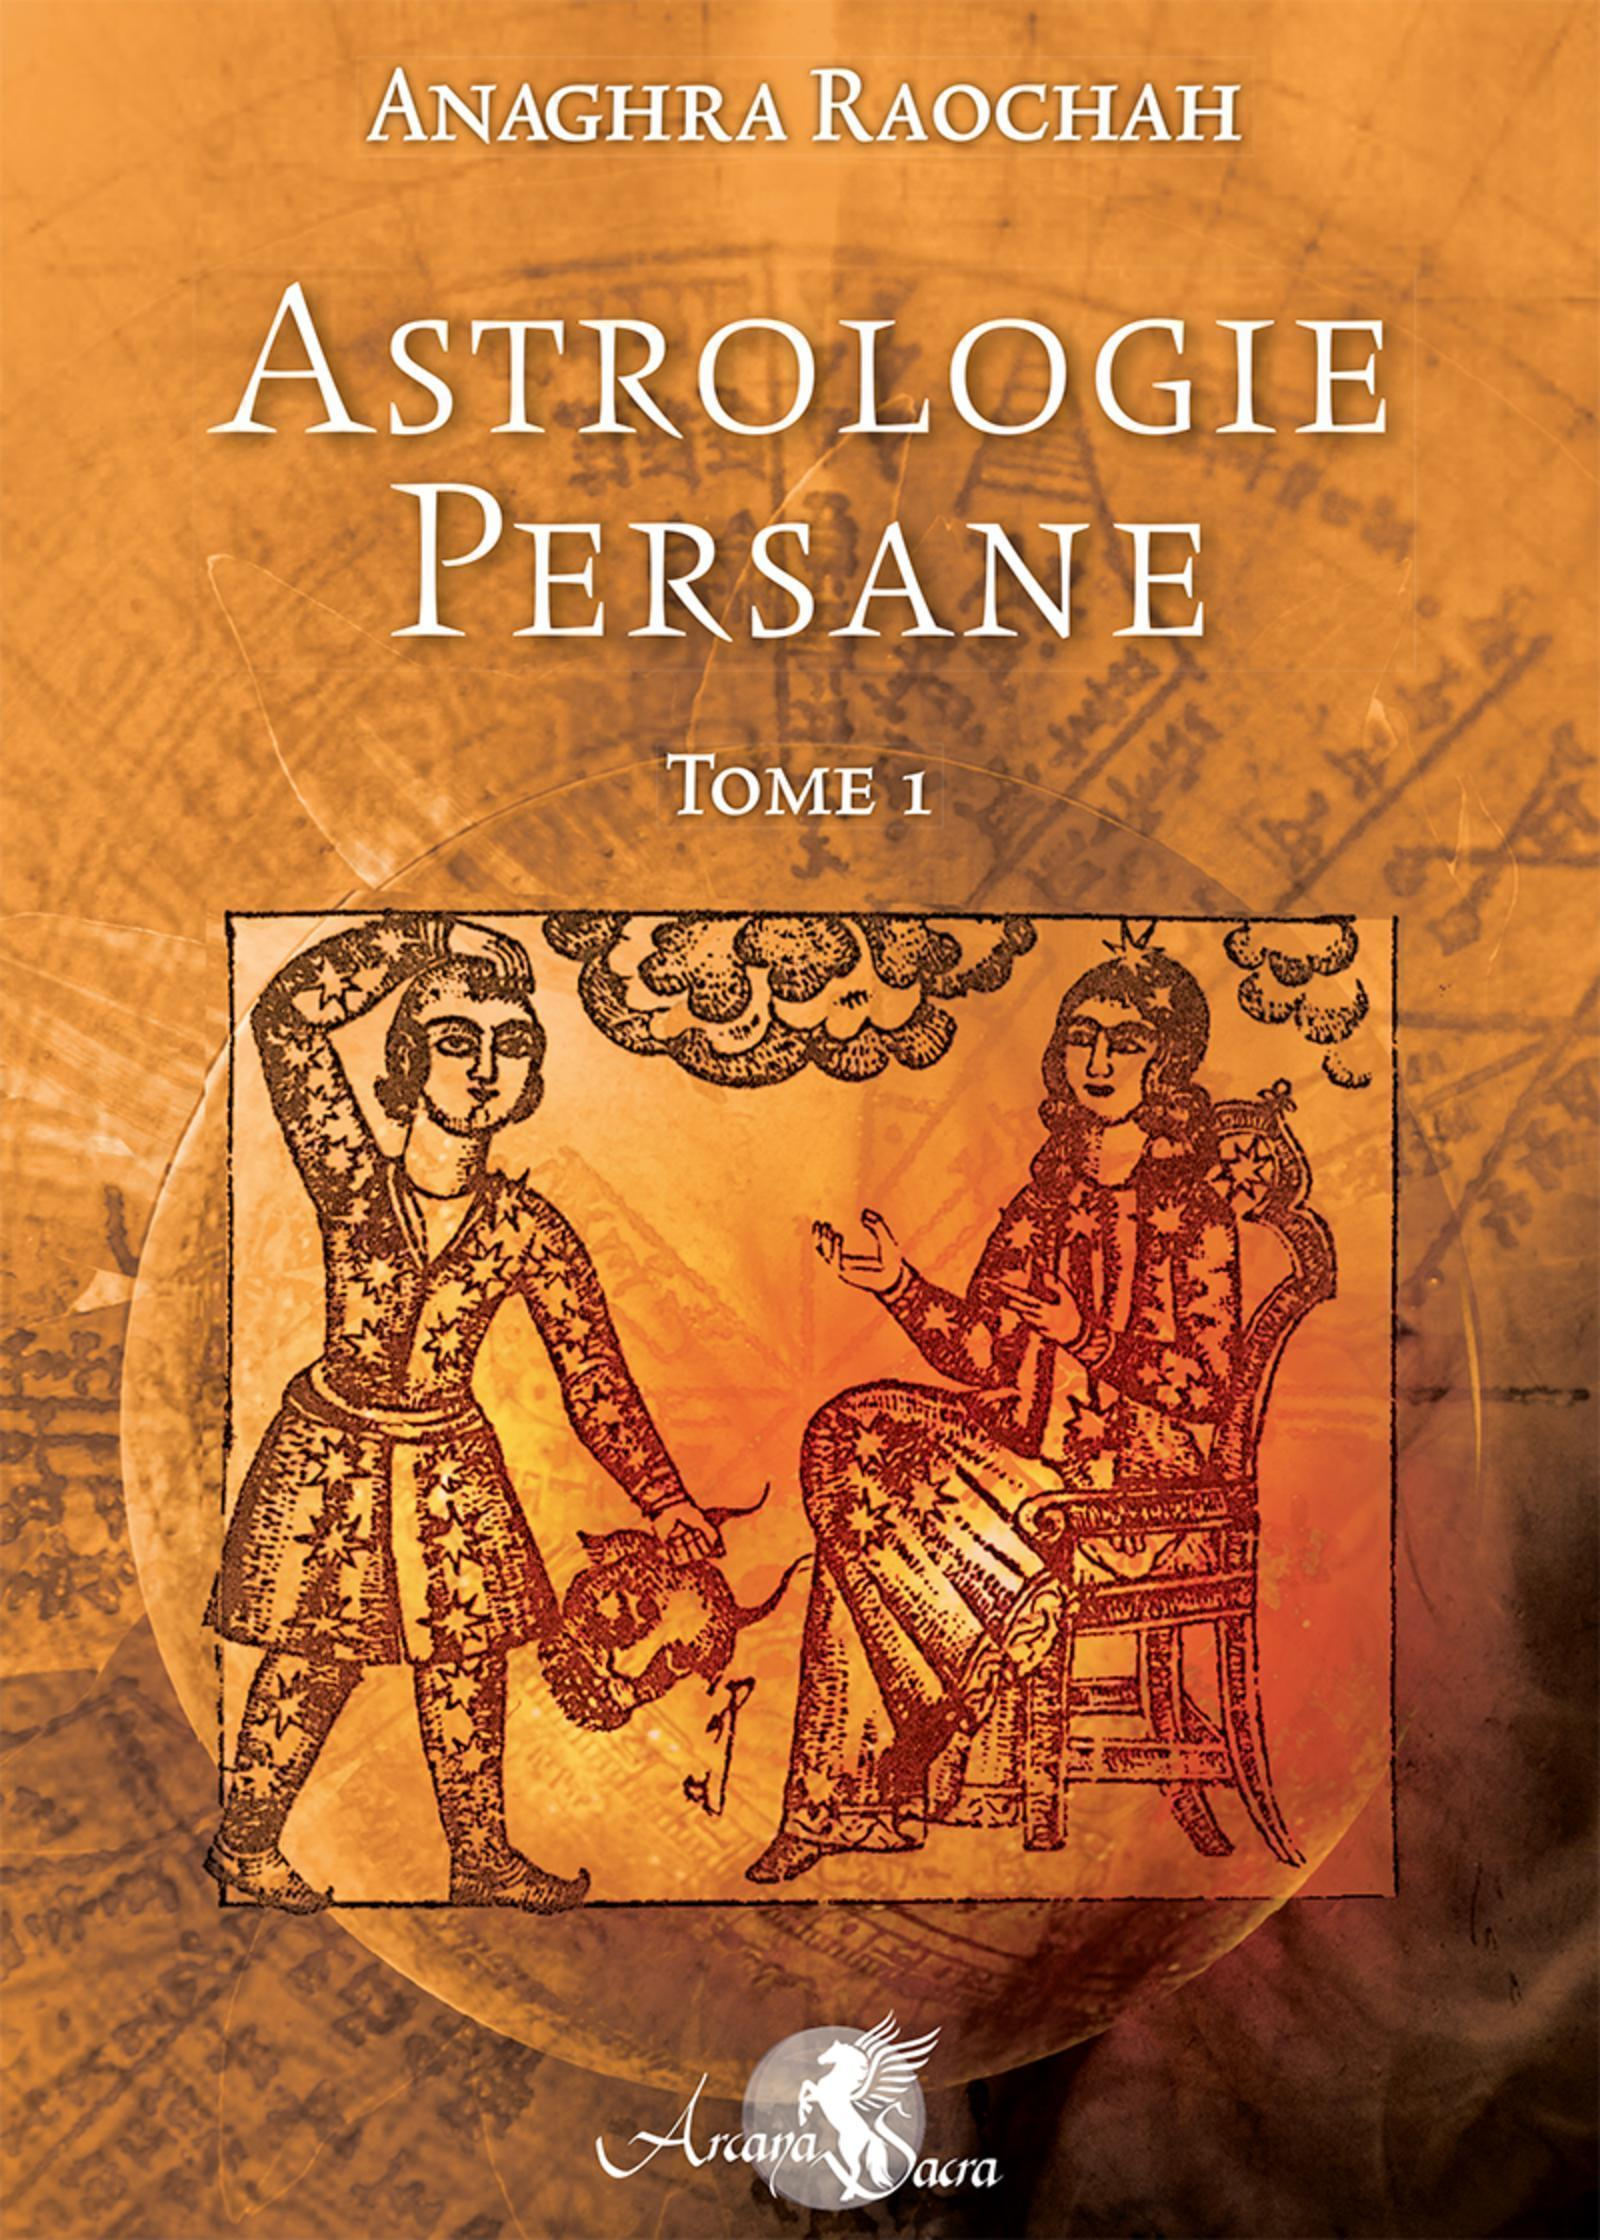 ASTROLOGIE PERSANE - TOME 1